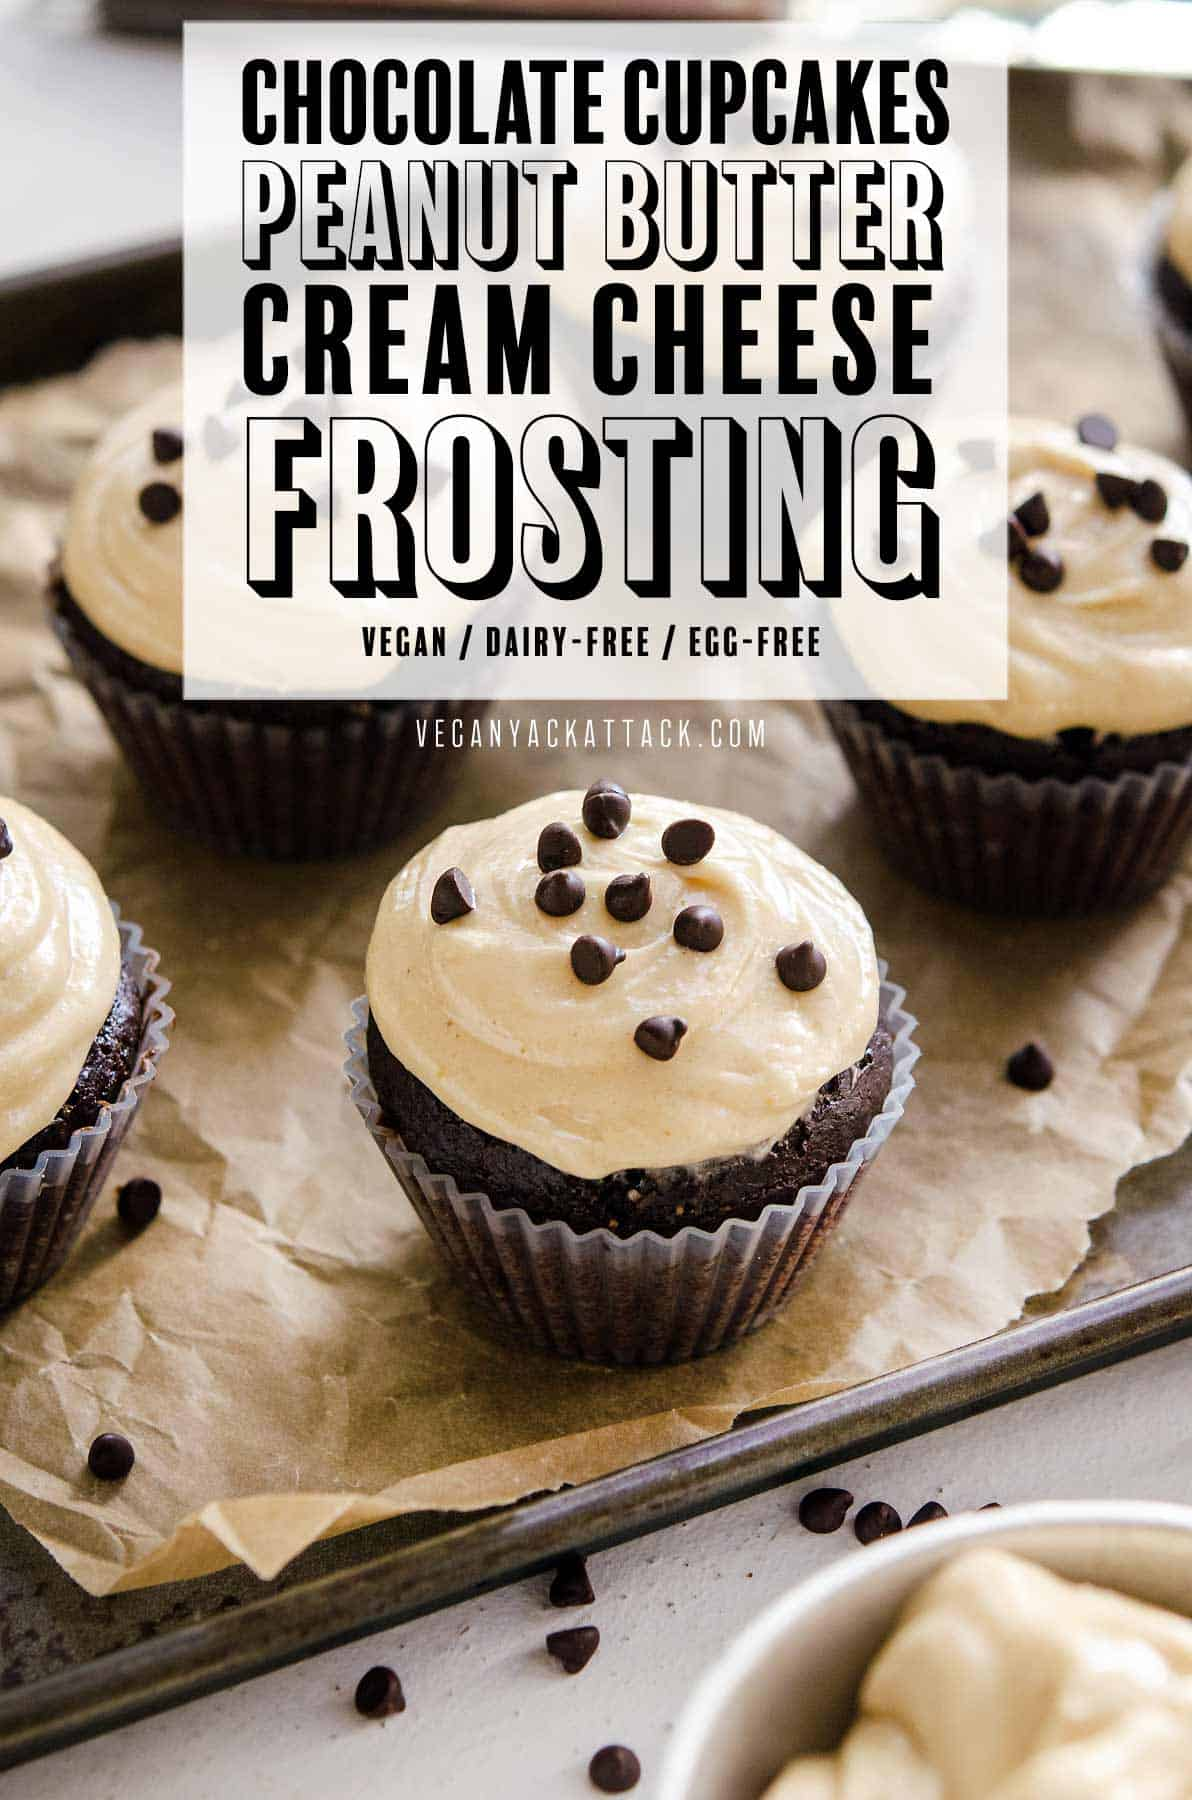 """Image of cupcakes on a baking sheet with text reading """"Chocolate Cupcakes with Peanut Butter Cream Cheese Frosting"""""""